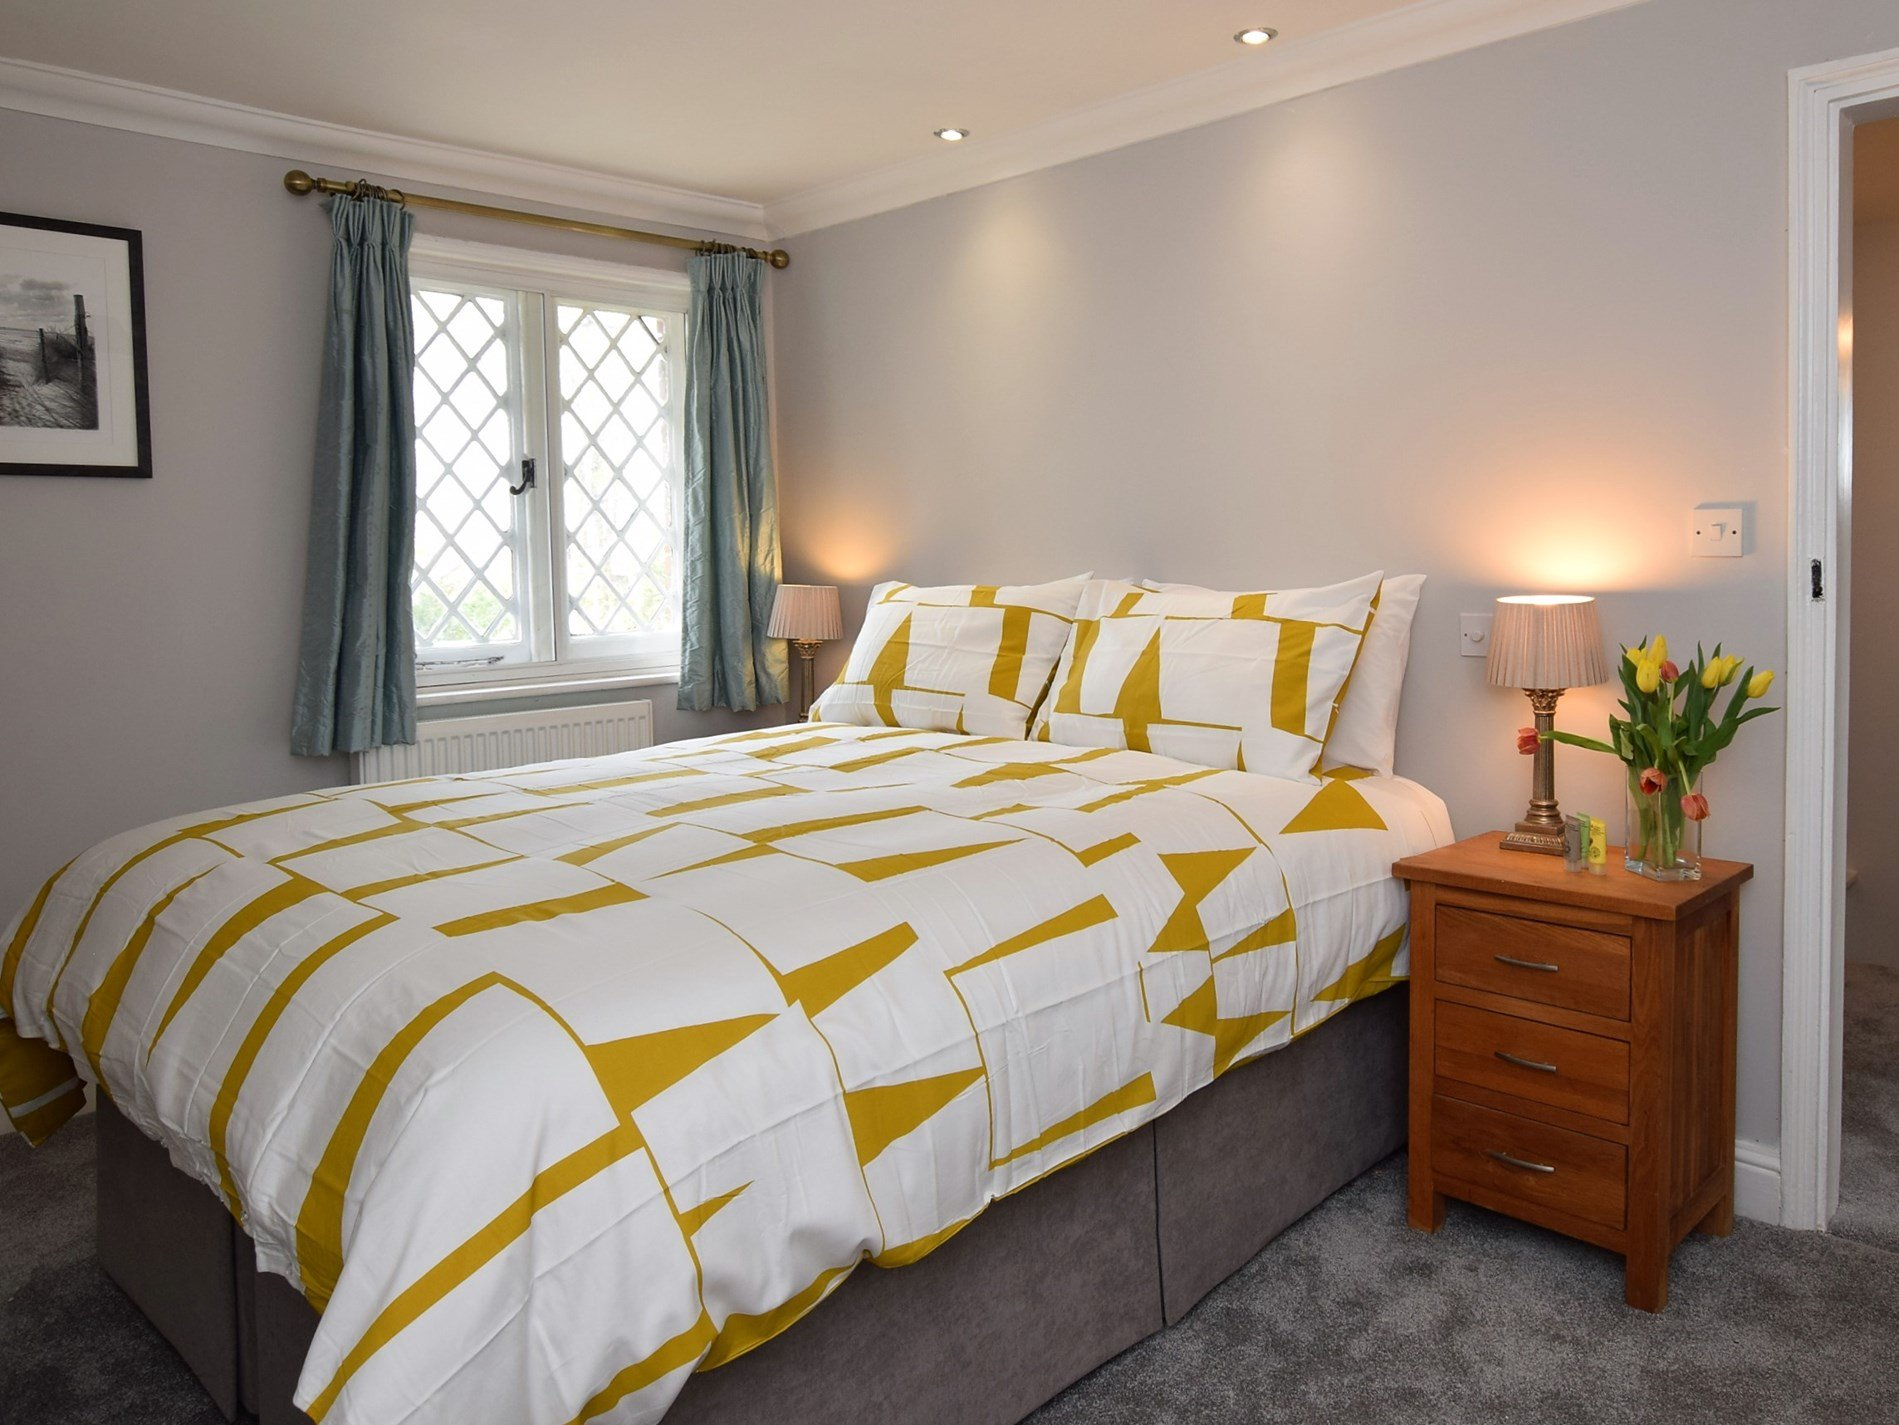 A bright and airy king-size bedroom